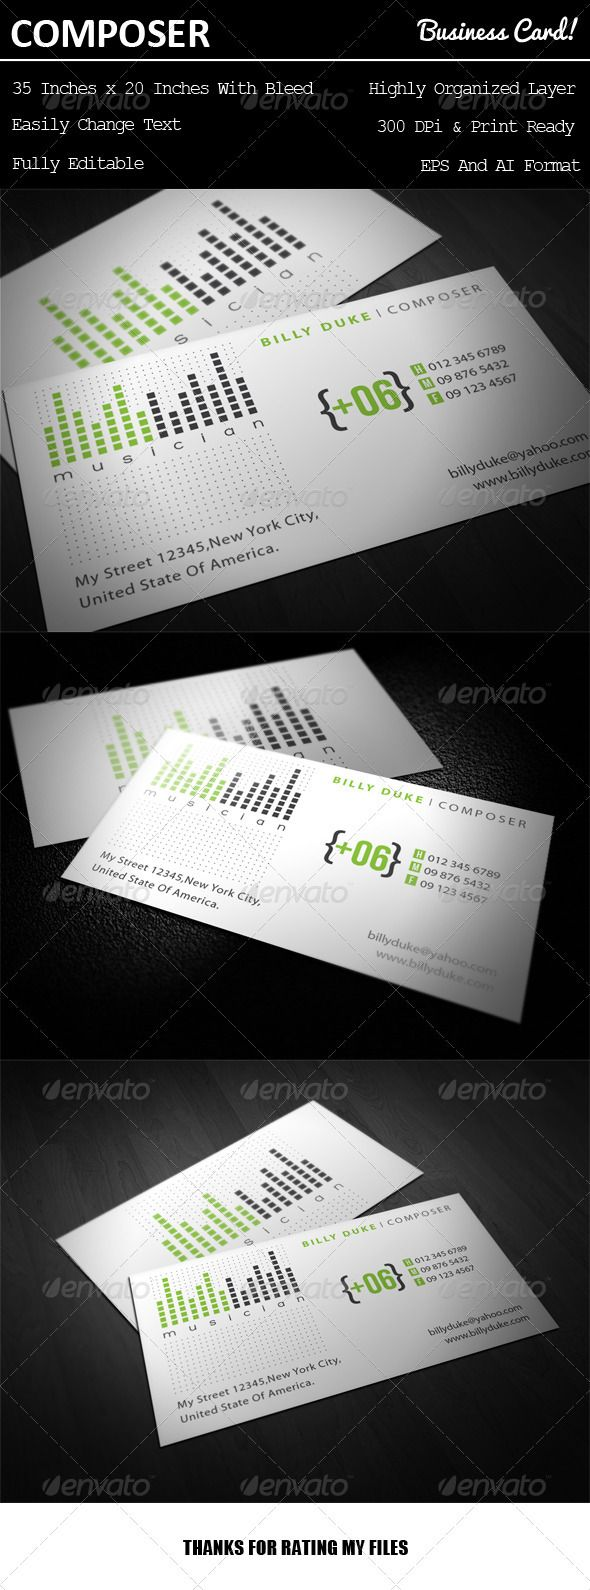 Composer Business Card | Business cards, Business and Print templates